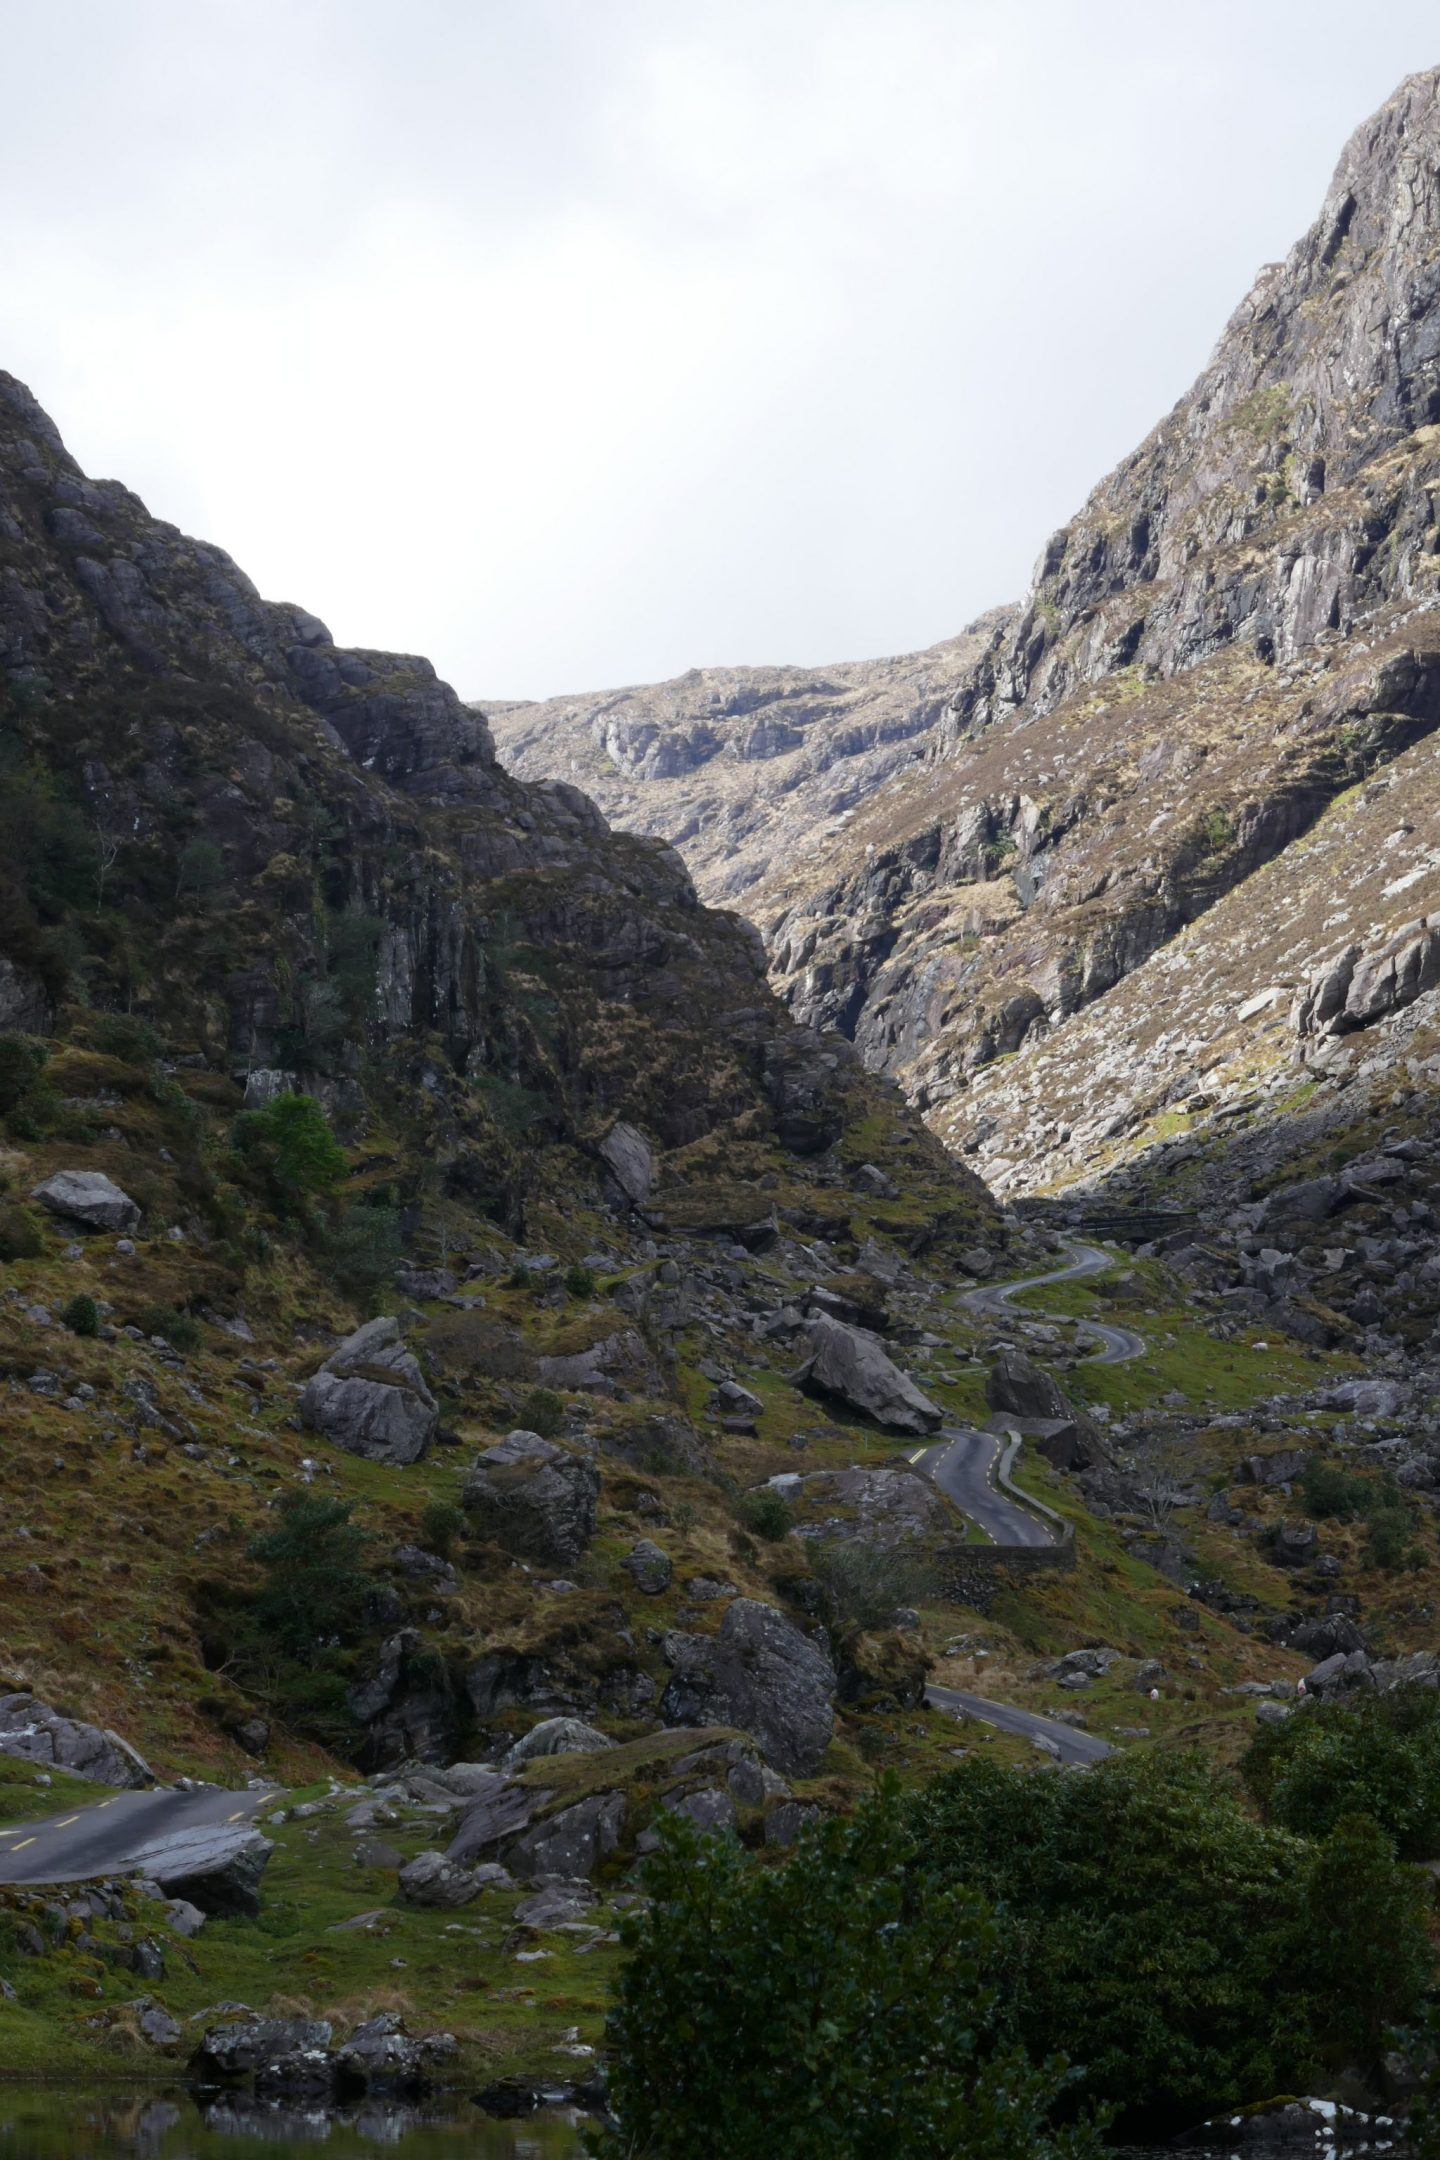 The twists and turns of The Gap of Dunloe Road